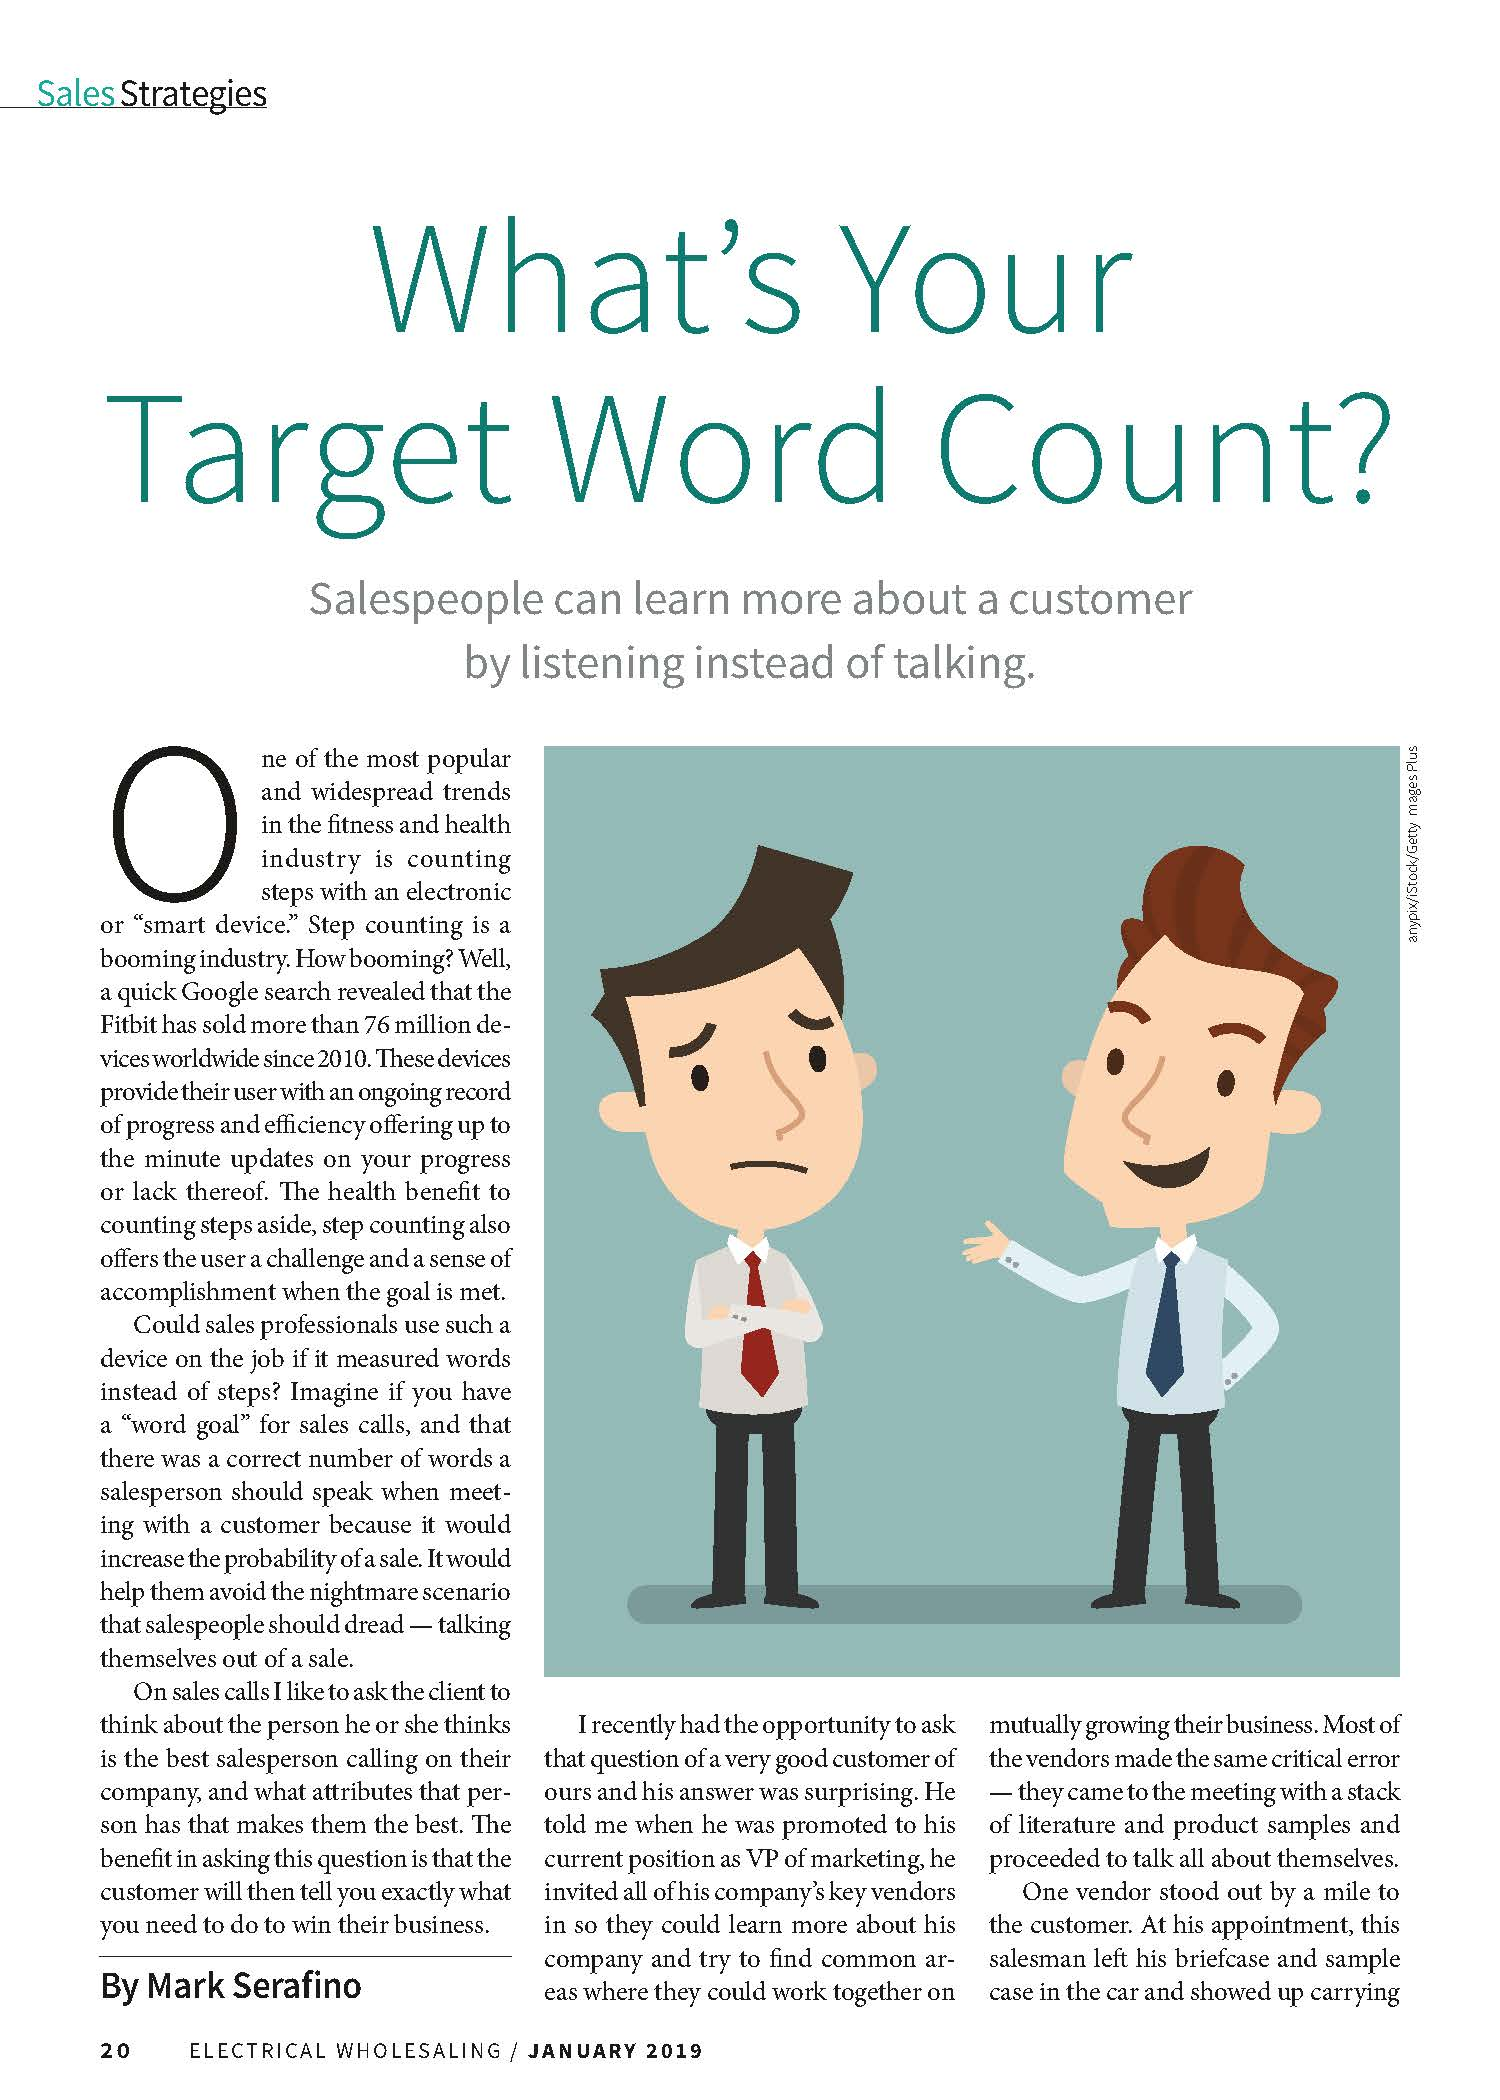 What's Your Target Word Count - Electrical Wholesaling_Page_1